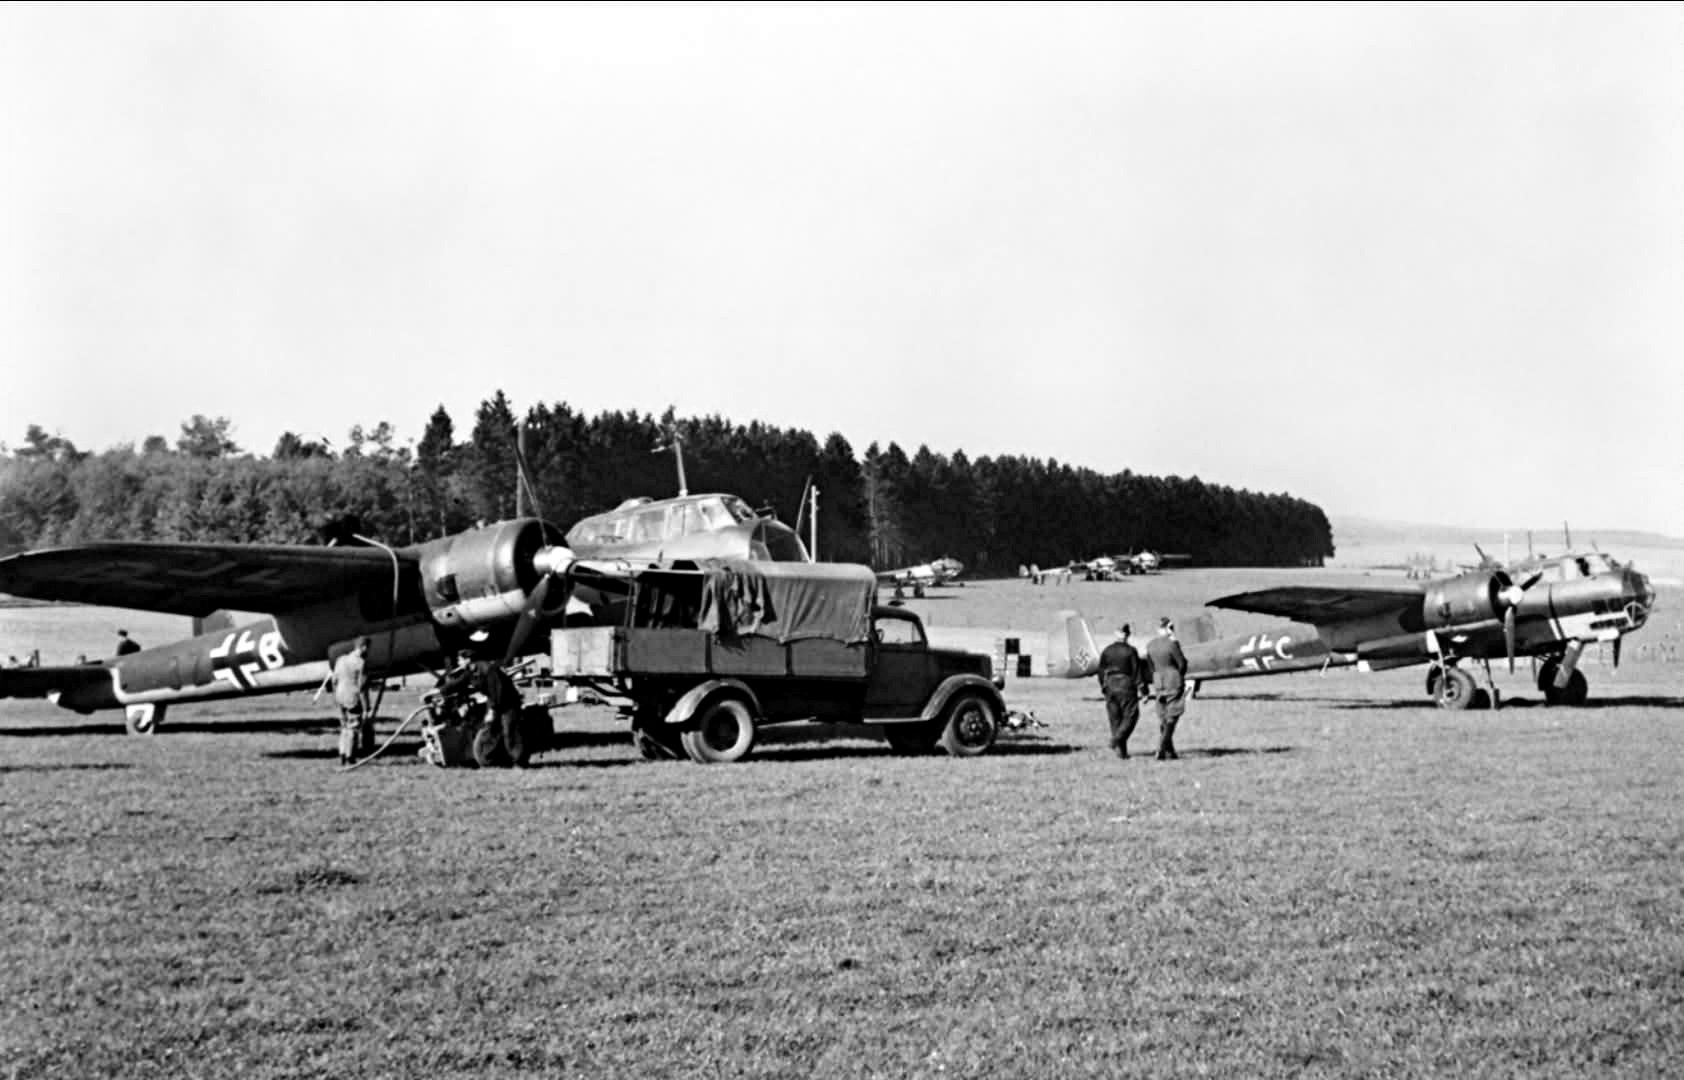 Dornier_Do_17Z_of_II-KG77_being_serviced_on_Freux_auxiliary_airfield_in_Belgium.jpg